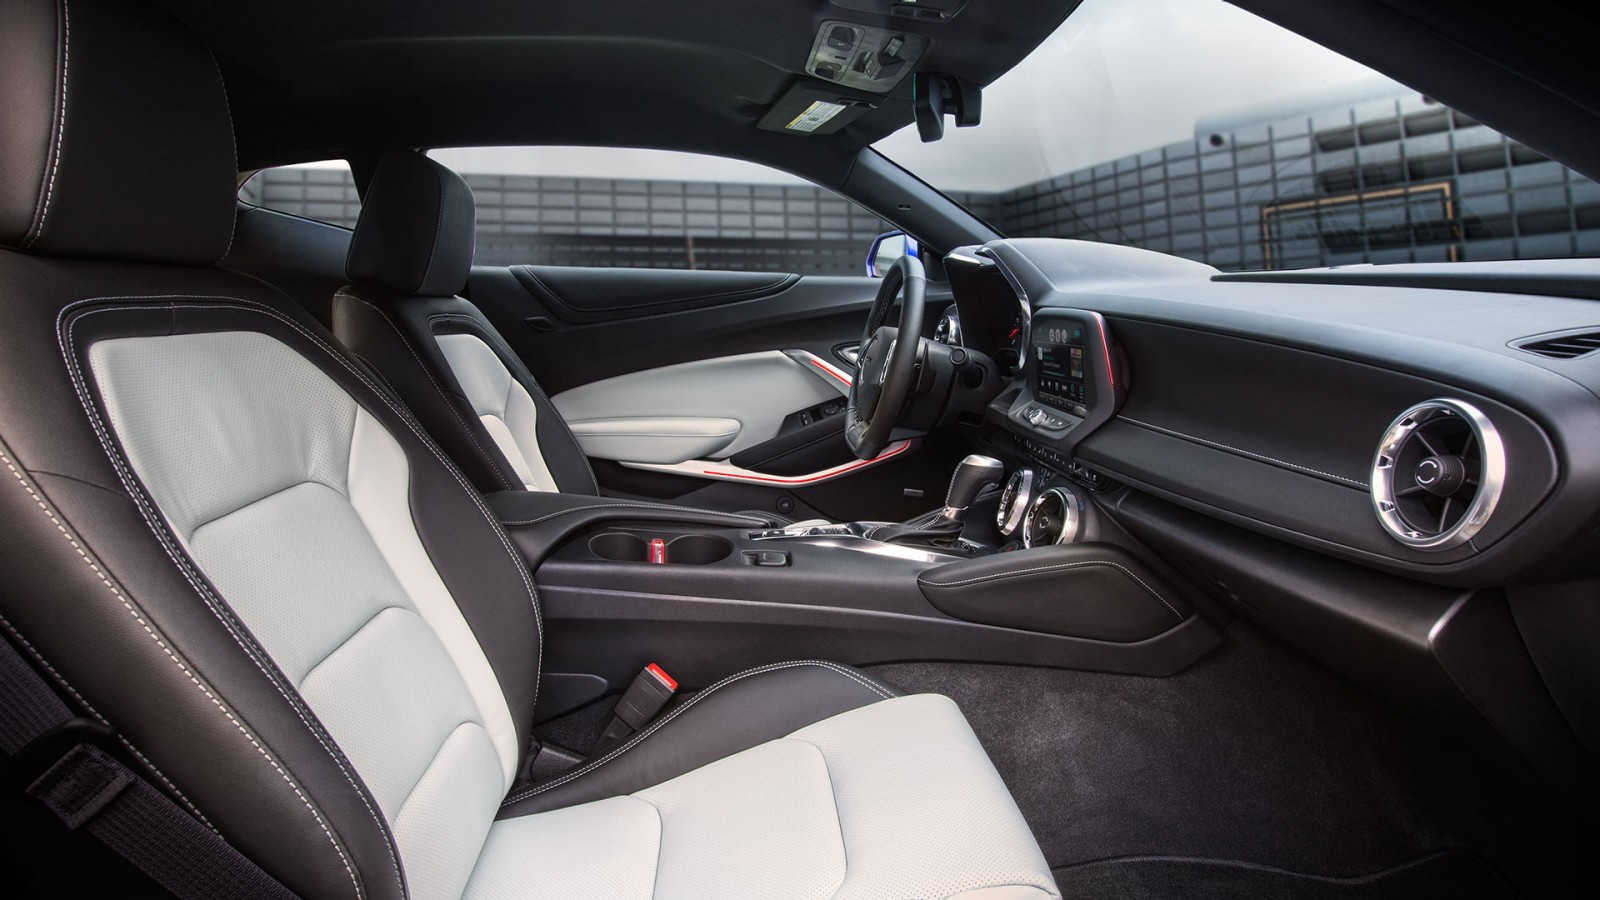 Interior of the 2017 Chevy Camaro